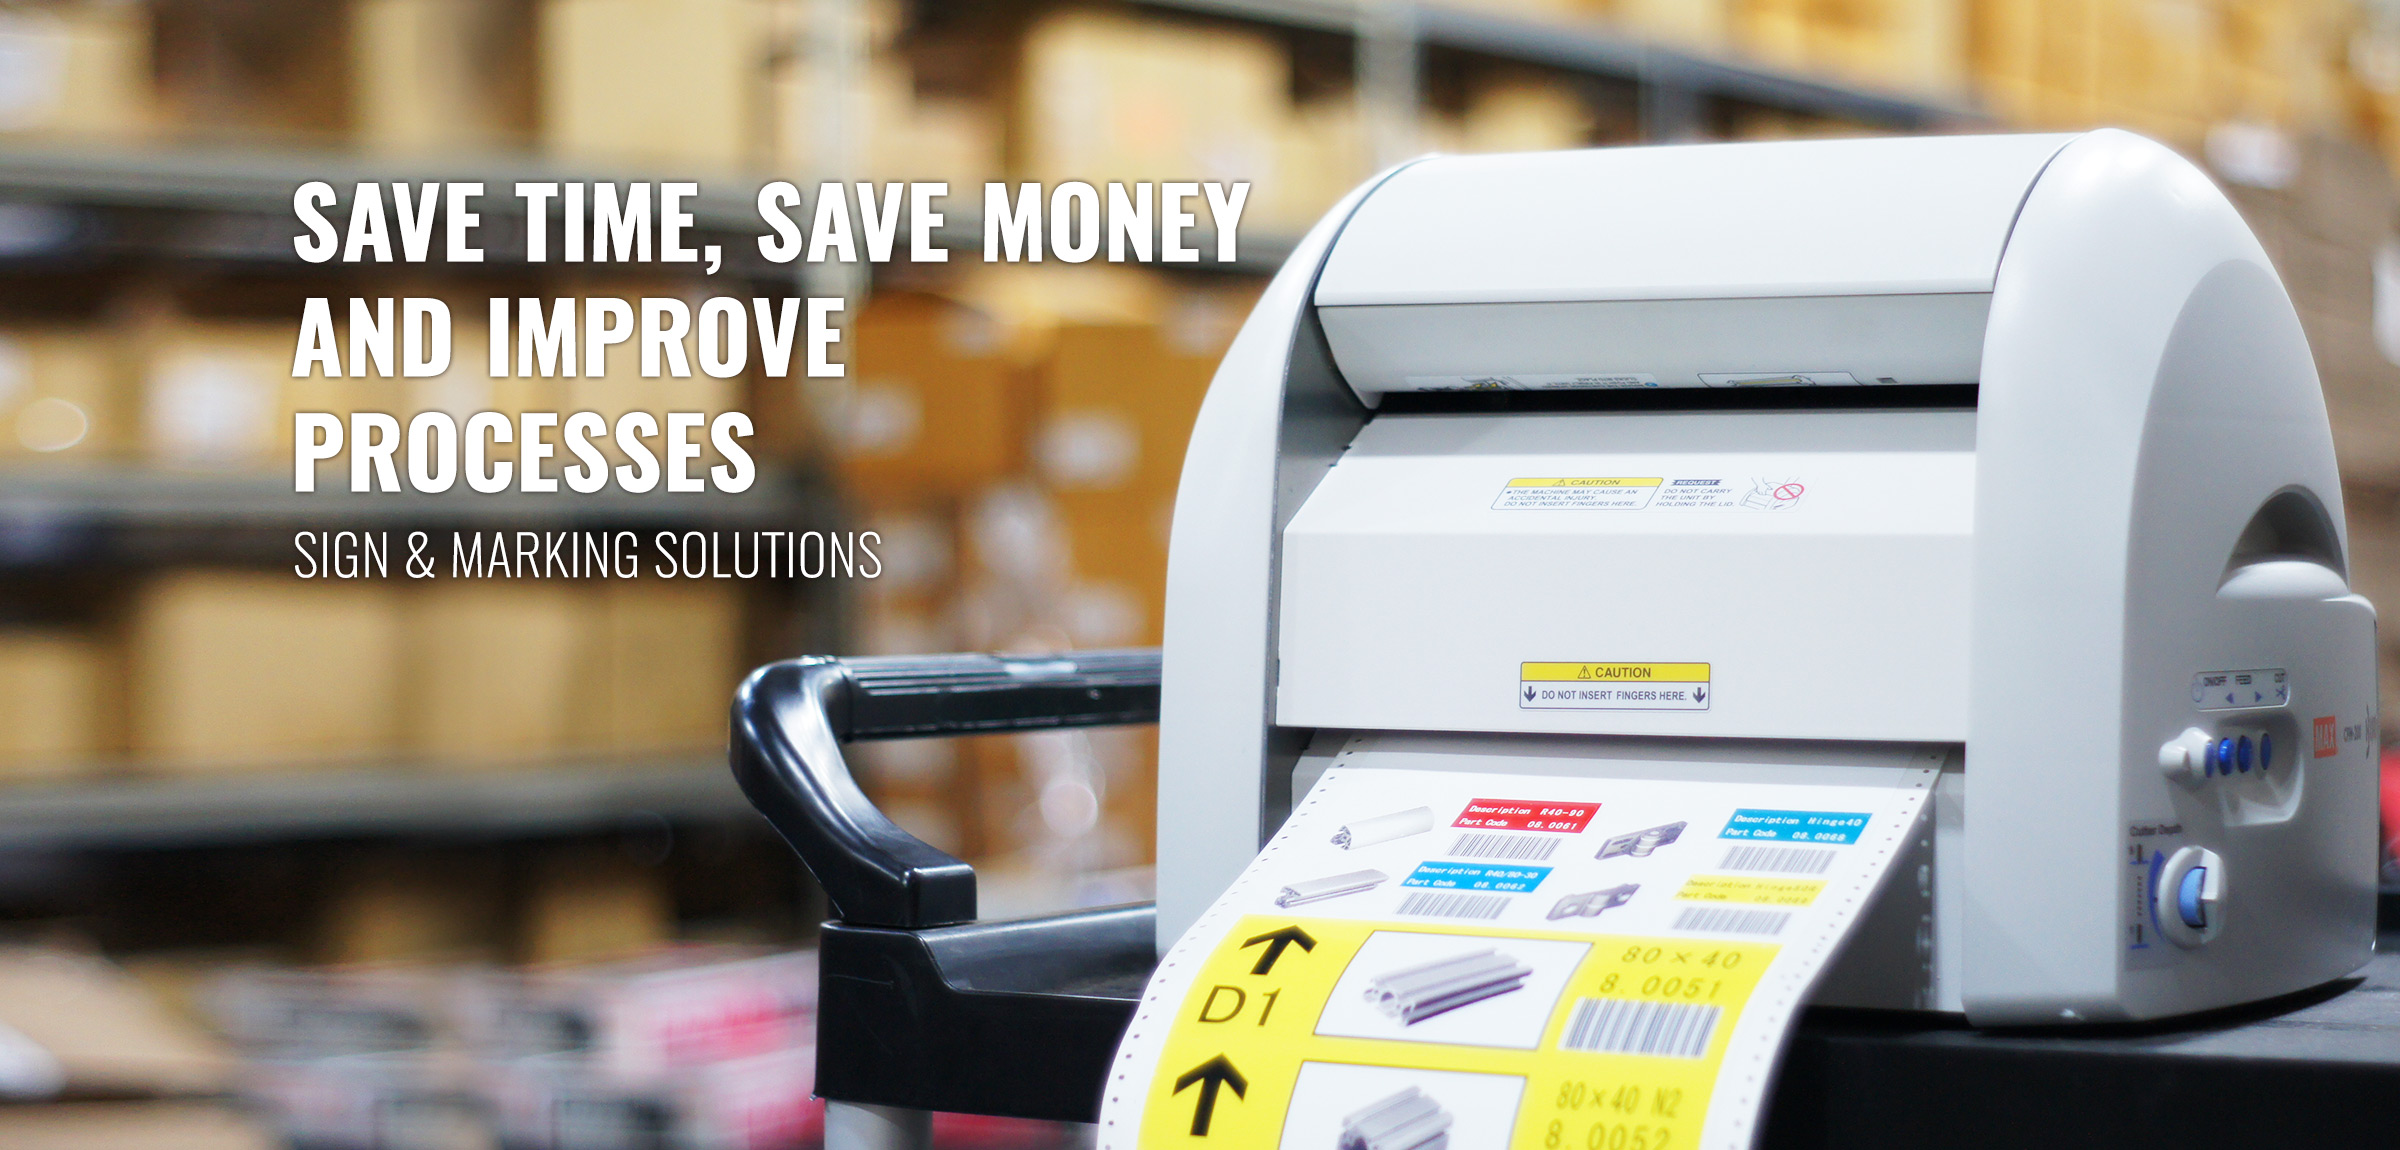 Save Time, Save Money and Improve Processes